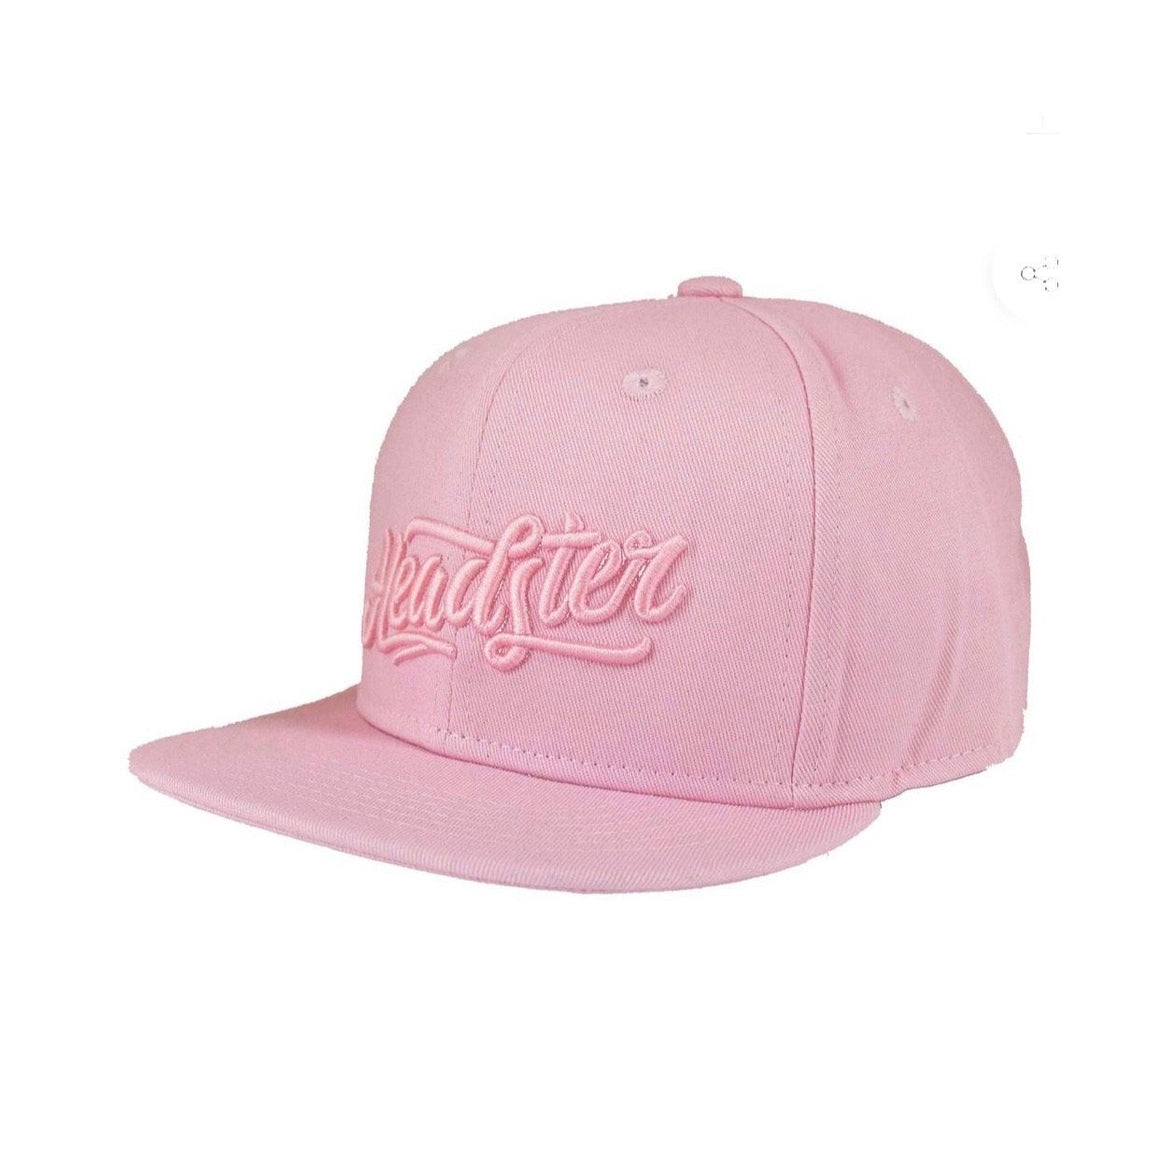 Headster - Everyday Pink Perfection Snapback Hats Headster